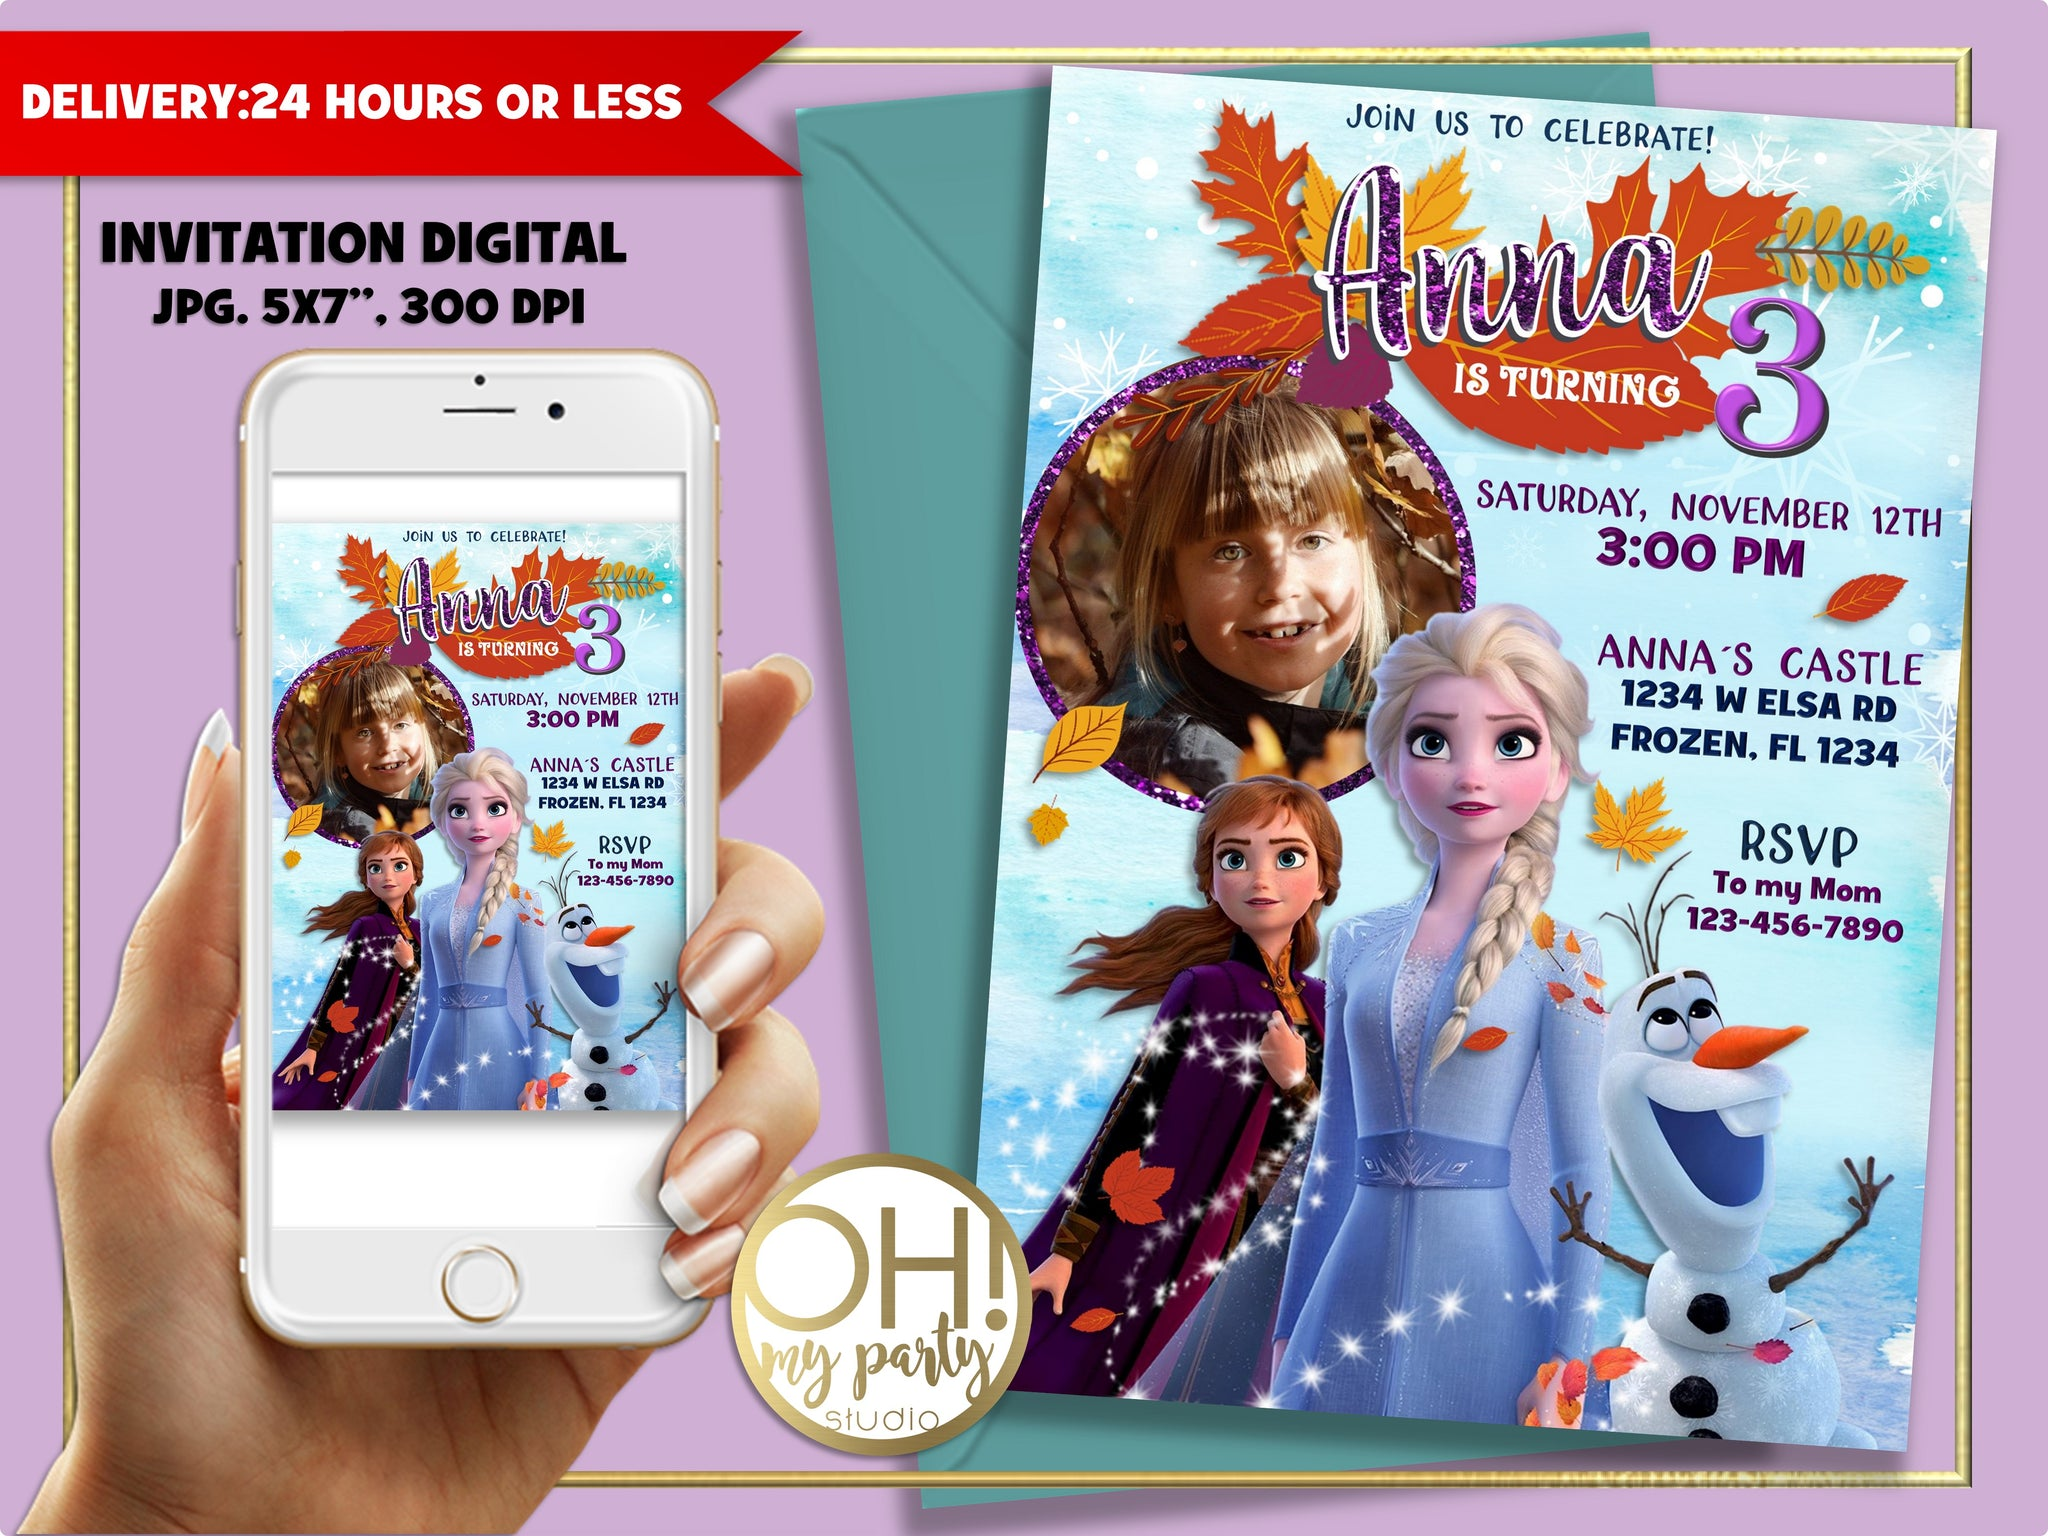 FROZEN 2 BIRTHDAY PARTY, FROZEN 2 INVITATION, FROZEN 2 INVITATIONS, FROZEN 2 BIRTHDAY, FROZEN 2 PARTY, FROZEN 2 PARTY INVITATION, FROZEN 2 PARTY IDEAS, FROZEN 2 PARTY DECORATION, FORZEN 2 INVITE, FROZEN 2 CARD, FROZEN 2 DIGITAL INVITATION, FROZEN 2 INVITATION DIGITAL, FROZEN 2 INVITACIÓN, FROZEN 2 INVITACIÓN DIGITAL, frozen 2 digital invitation, frozen 2 printables, frozen 2 birthday printables, frozen 2 invite, frozen 2 invitations